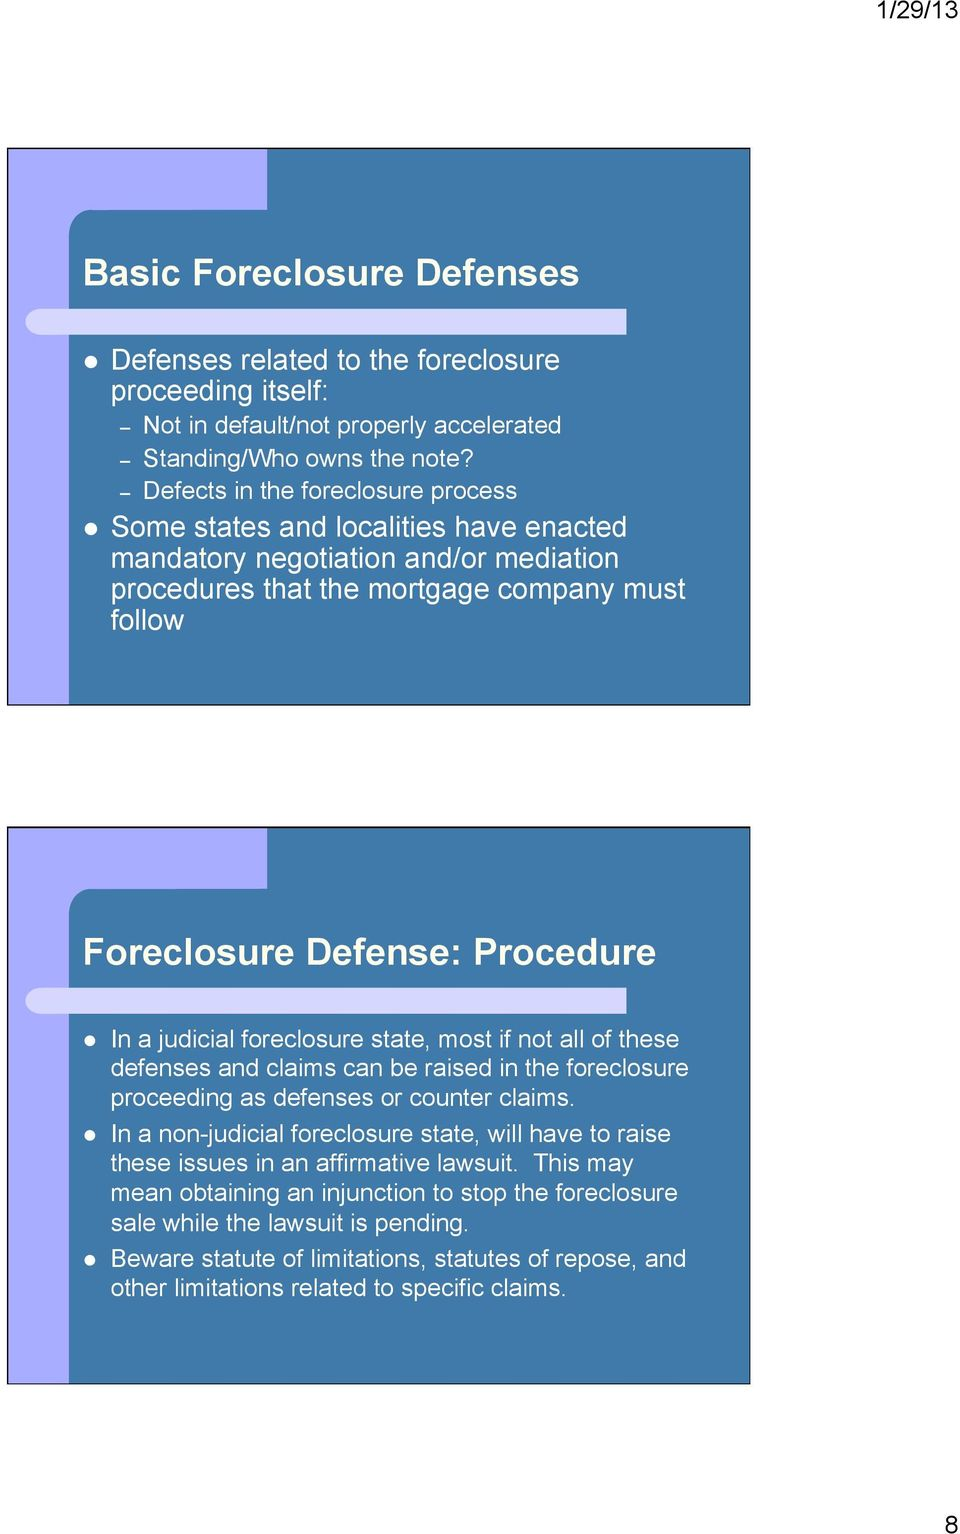 a judicial foreclosure state, most if not all of these defenses and claims can be raised in the foreclosure proceeding as defenses or counter claims.